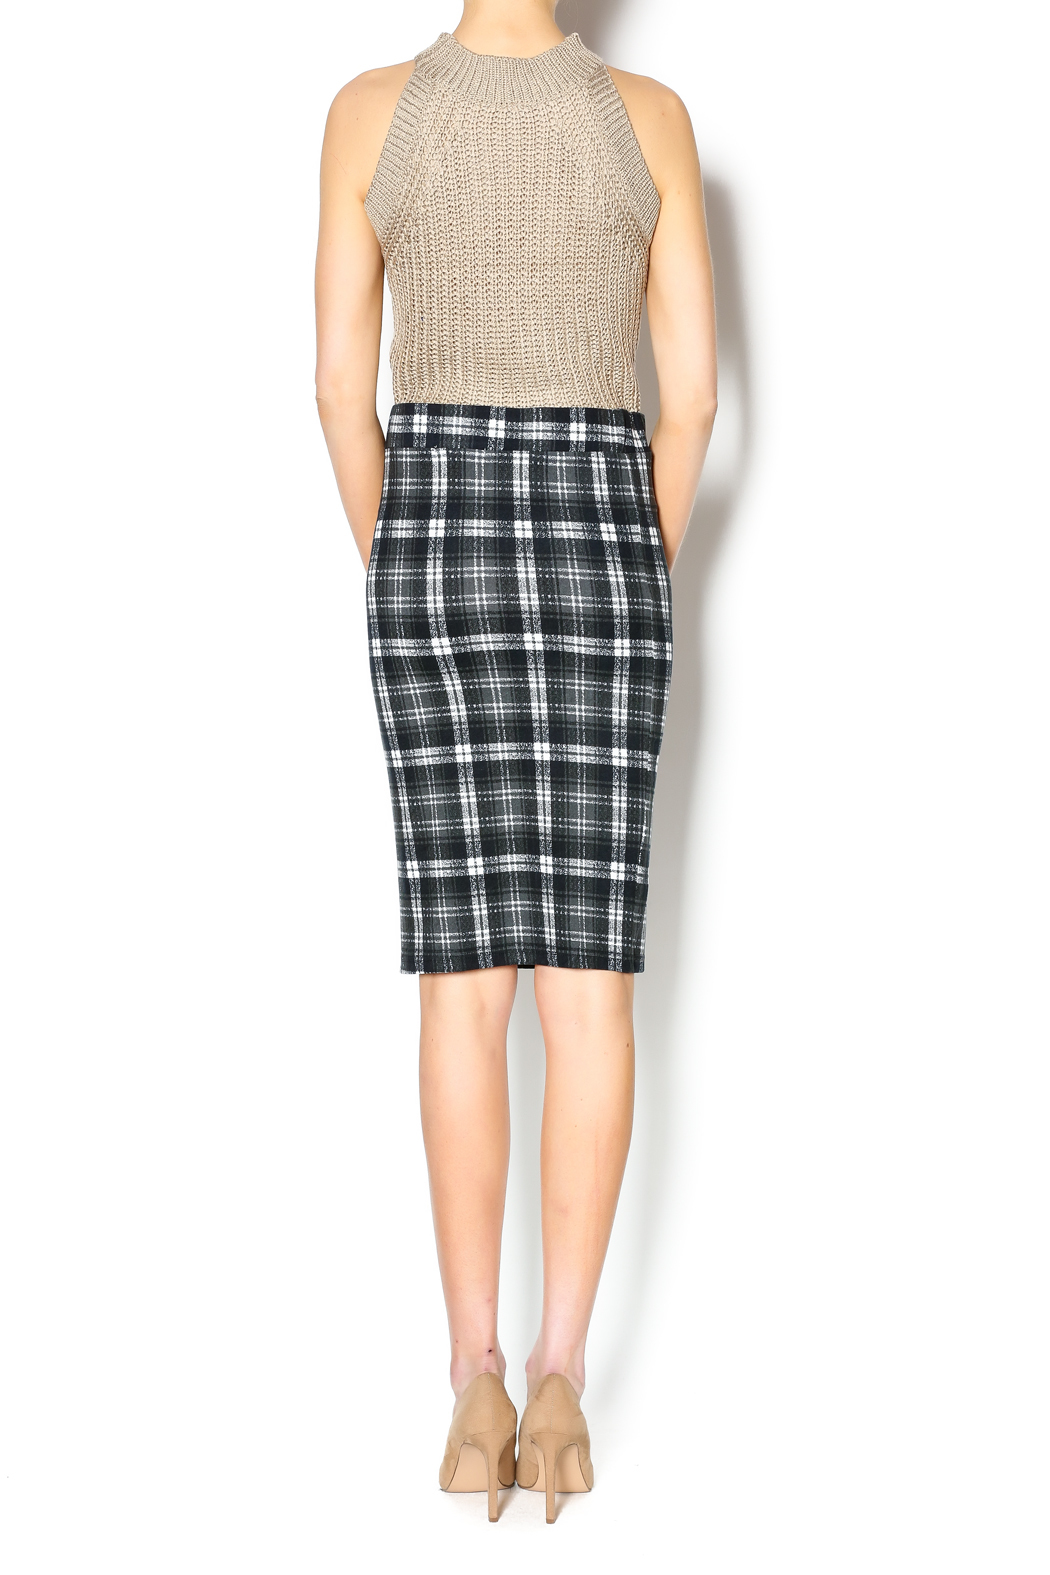 Bishop + Young Plaid Pencil Skirt - Side Cropped Image